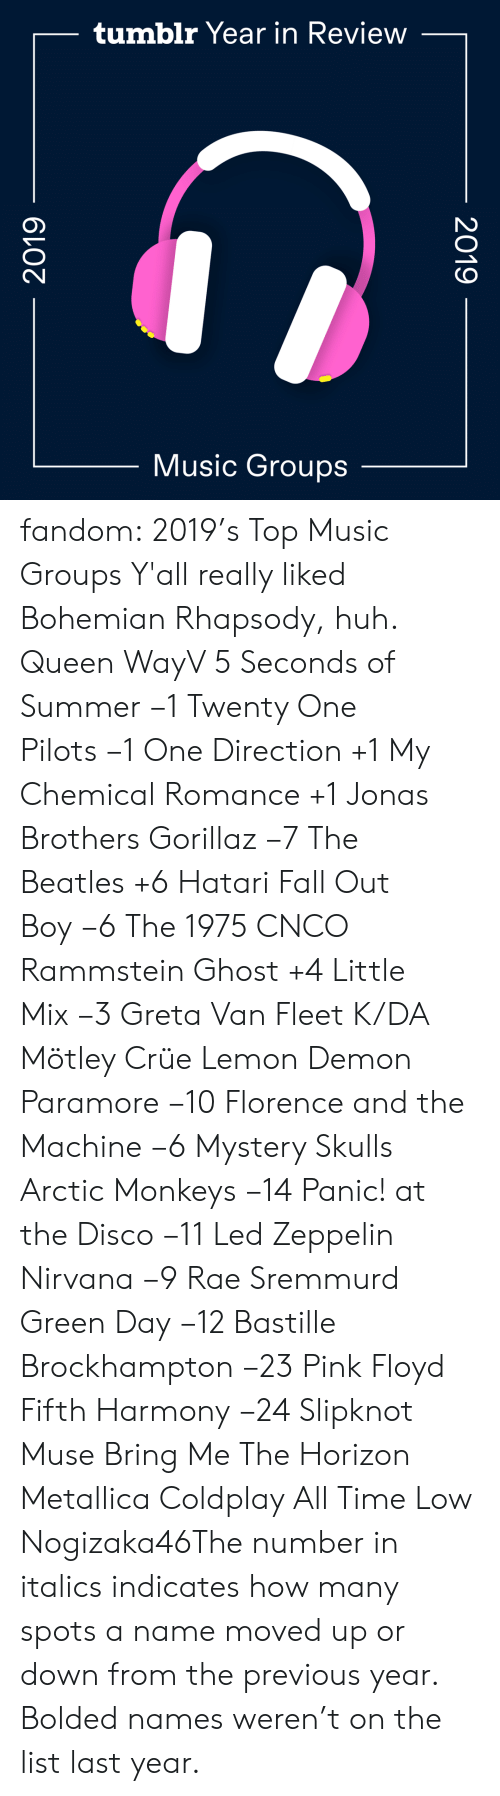 horizon: tumblr Year in Review  Music Groups  2019  2019 fandom:  2019's Top Music Groups  Y'all really liked Bohemian Rhapsody, huh.  Queen  WayV  5 Seconds of Summer −1  Twenty One Pilots −1  One Direction +1  My Chemical Romance +1  Jonas Brothers  Gorillaz −7  The Beatles +6  Hatari  Fall Out Boy −6  The 1975  CNCO  Rammstein  Ghost +4  Little Mix −3  Greta Van Fleet  K/DA  Mötley Crüe  Lemon Demon  Paramore −10  Florence and the Machine −6  Mystery Skulls  Arctic Monkeys −14  Panic! at the Disco −11  Led Zeppelin   Nirvana −9  Rae Sremmurd  Green Day −12  Bastille  Brockhampton −23  Pink Floyd  Fifth Harmony −24  Slipknot  Muse  Bring Me The Horizon  Metallica  Coldplay  All Time Low  Nogizaka46The number in italics indicates how many spots a name moved up or down from the previous year. Bolded names weren't on the list last year.